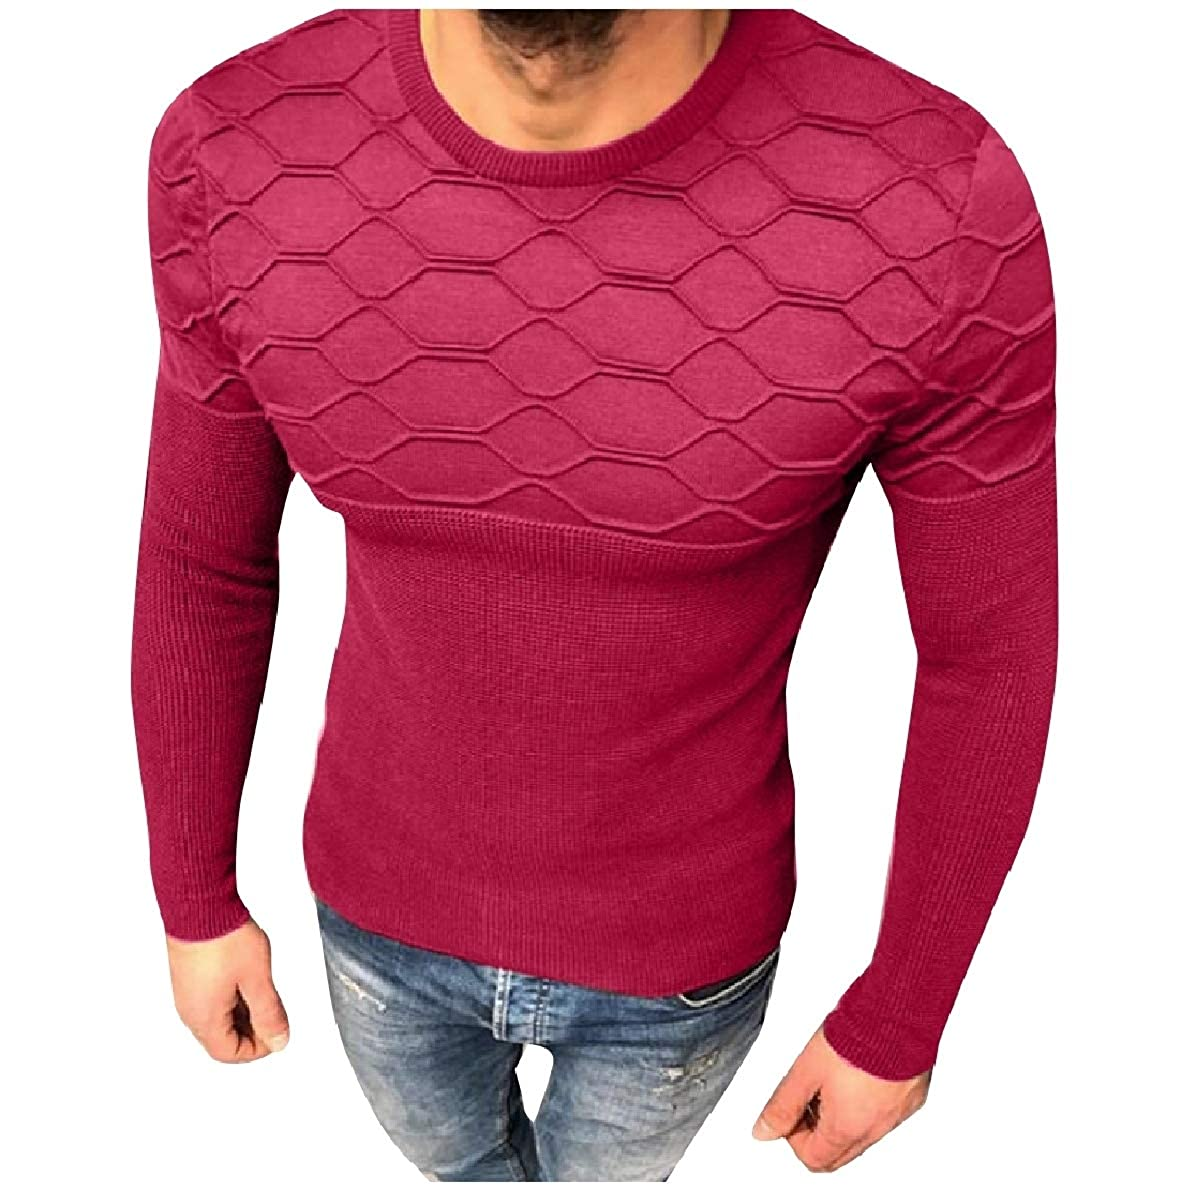 Comaba Men Knit Plaid Fashion Solid Color Pullover Fall Winter Sweater